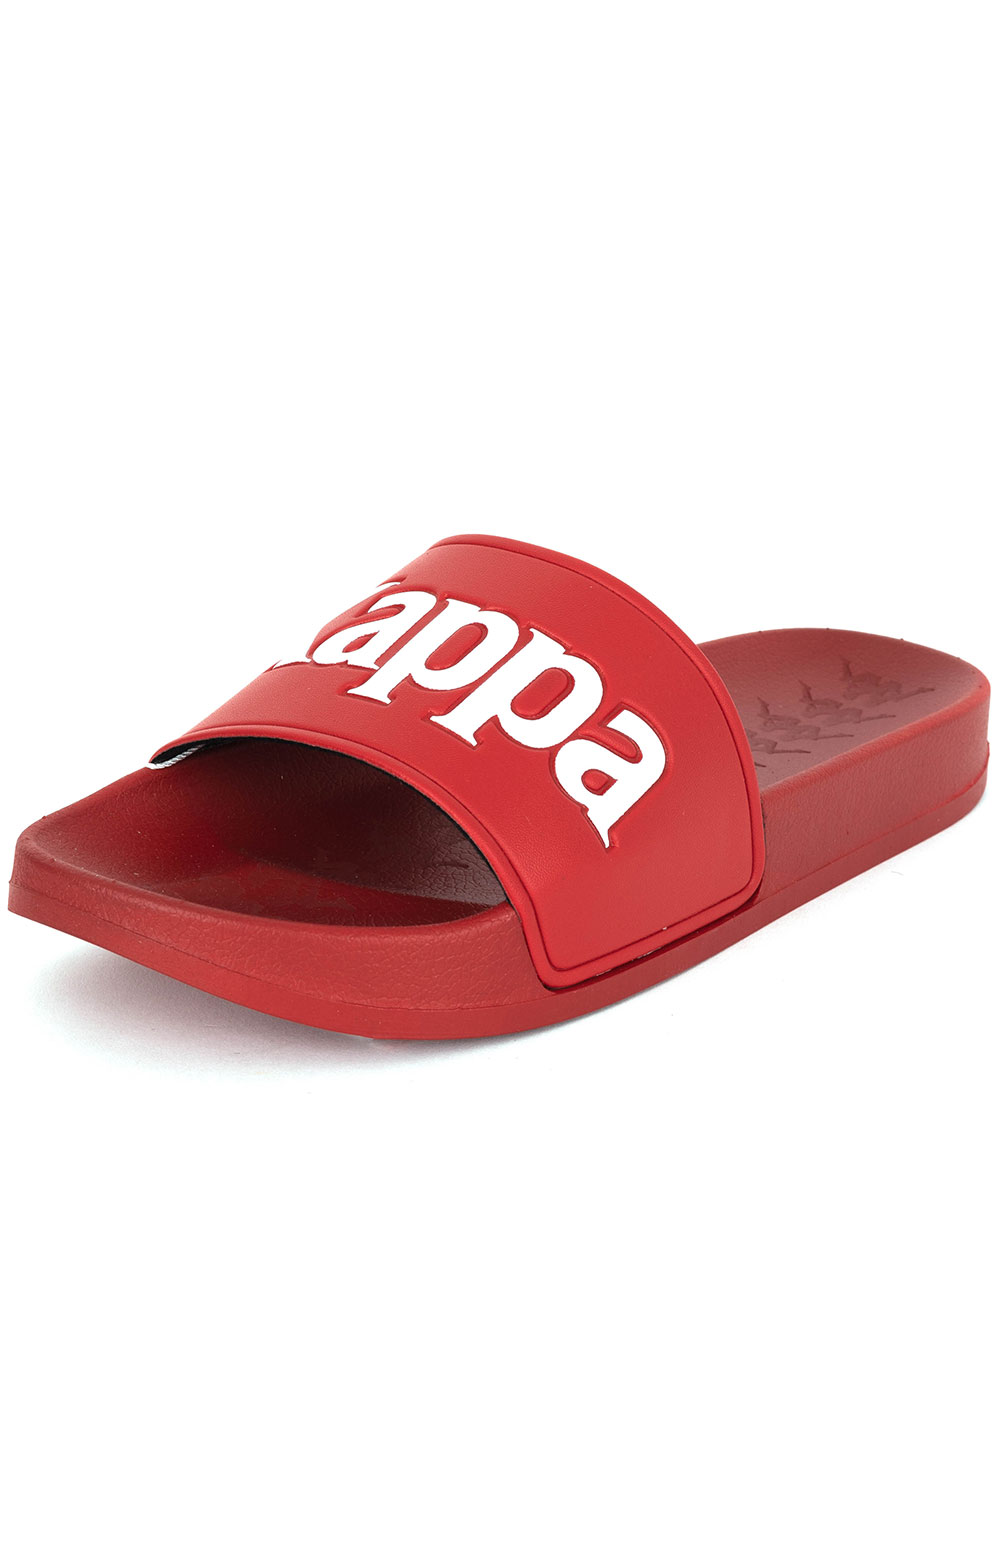 222 Banda Adam 9 Slides - Red/White